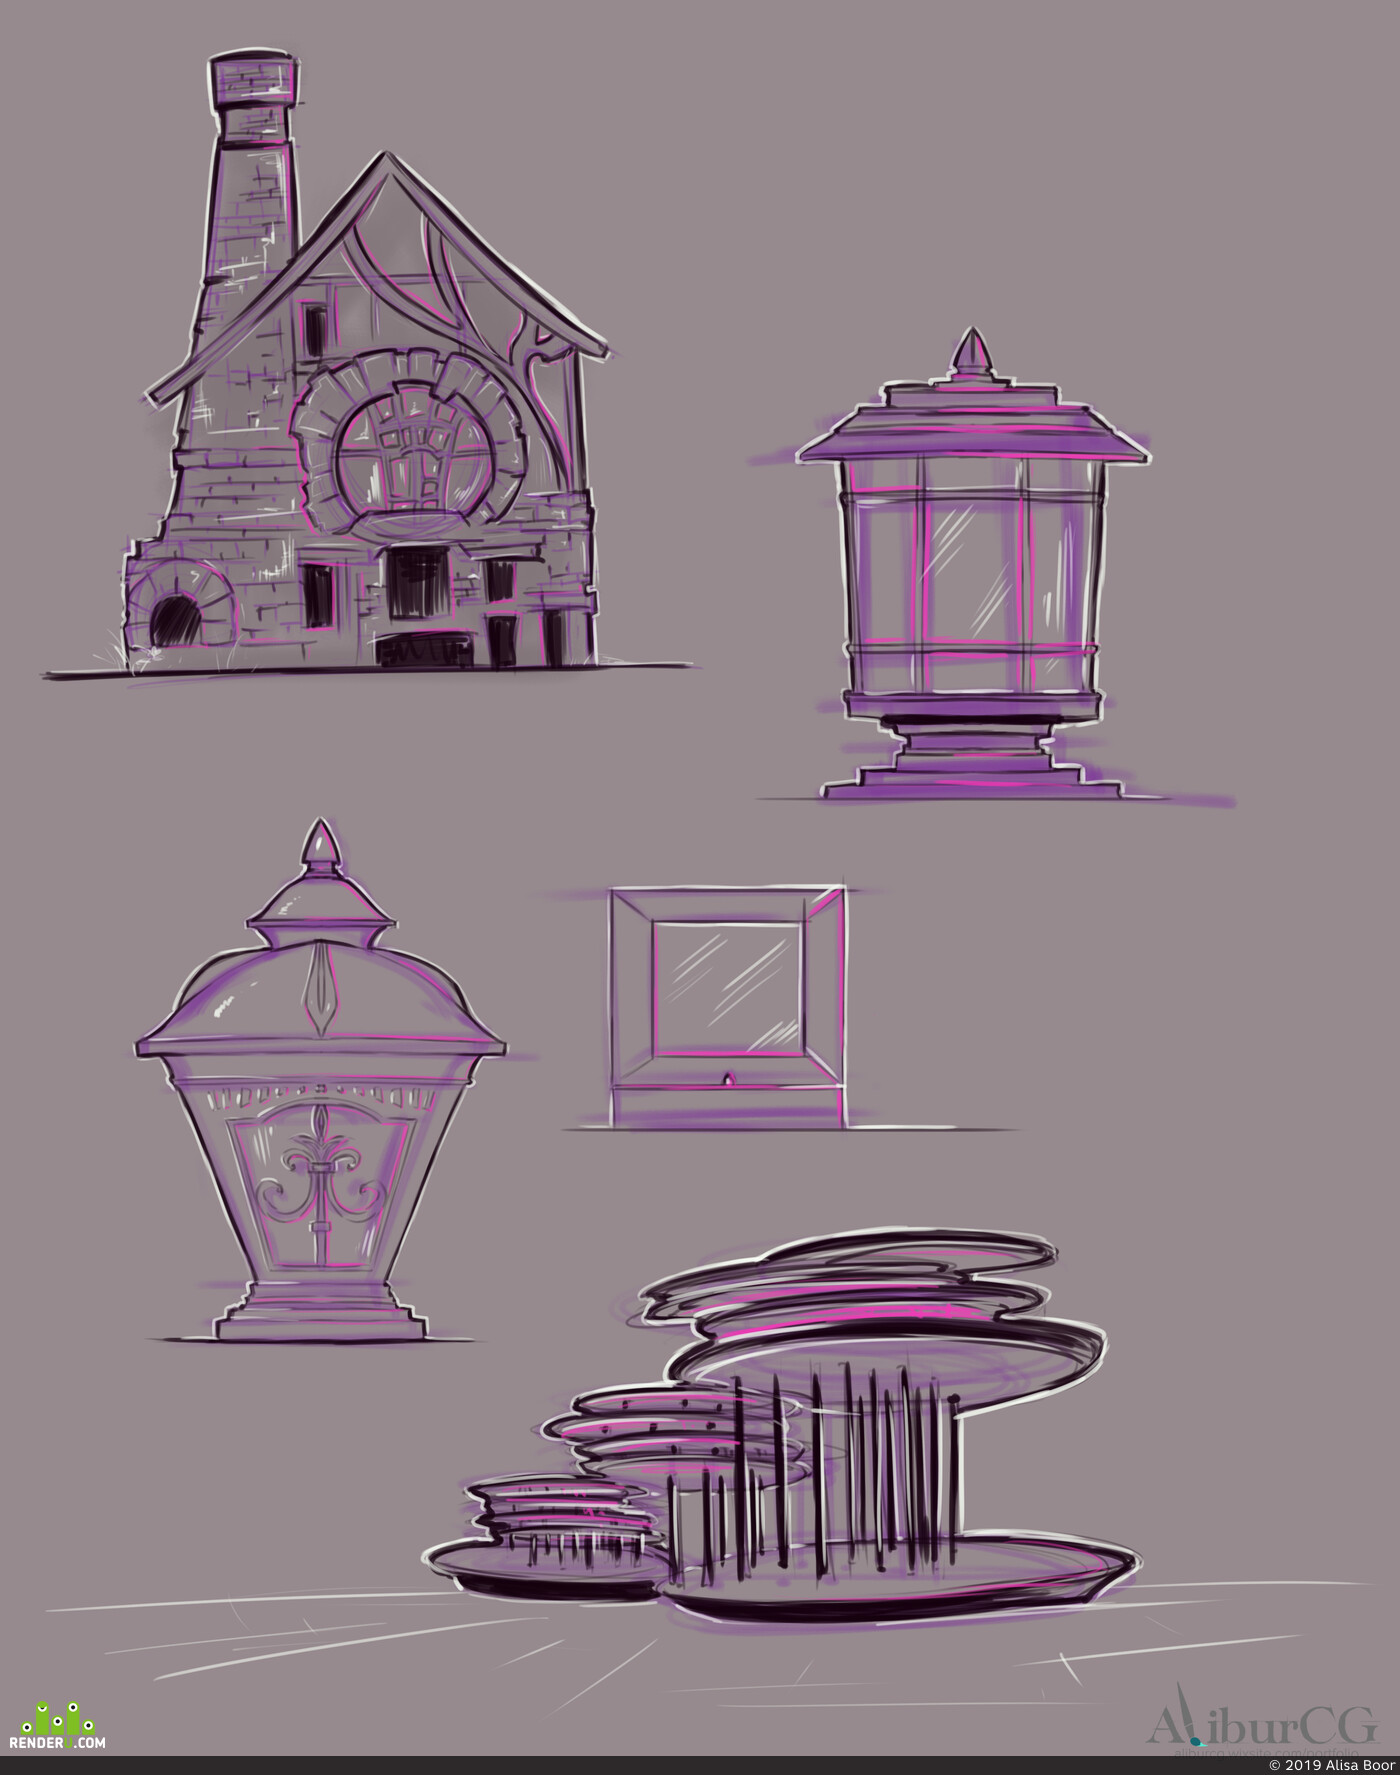 sketching, Sketches, digital sketching, everyday sketch, environment desigh, Environments, environment practice